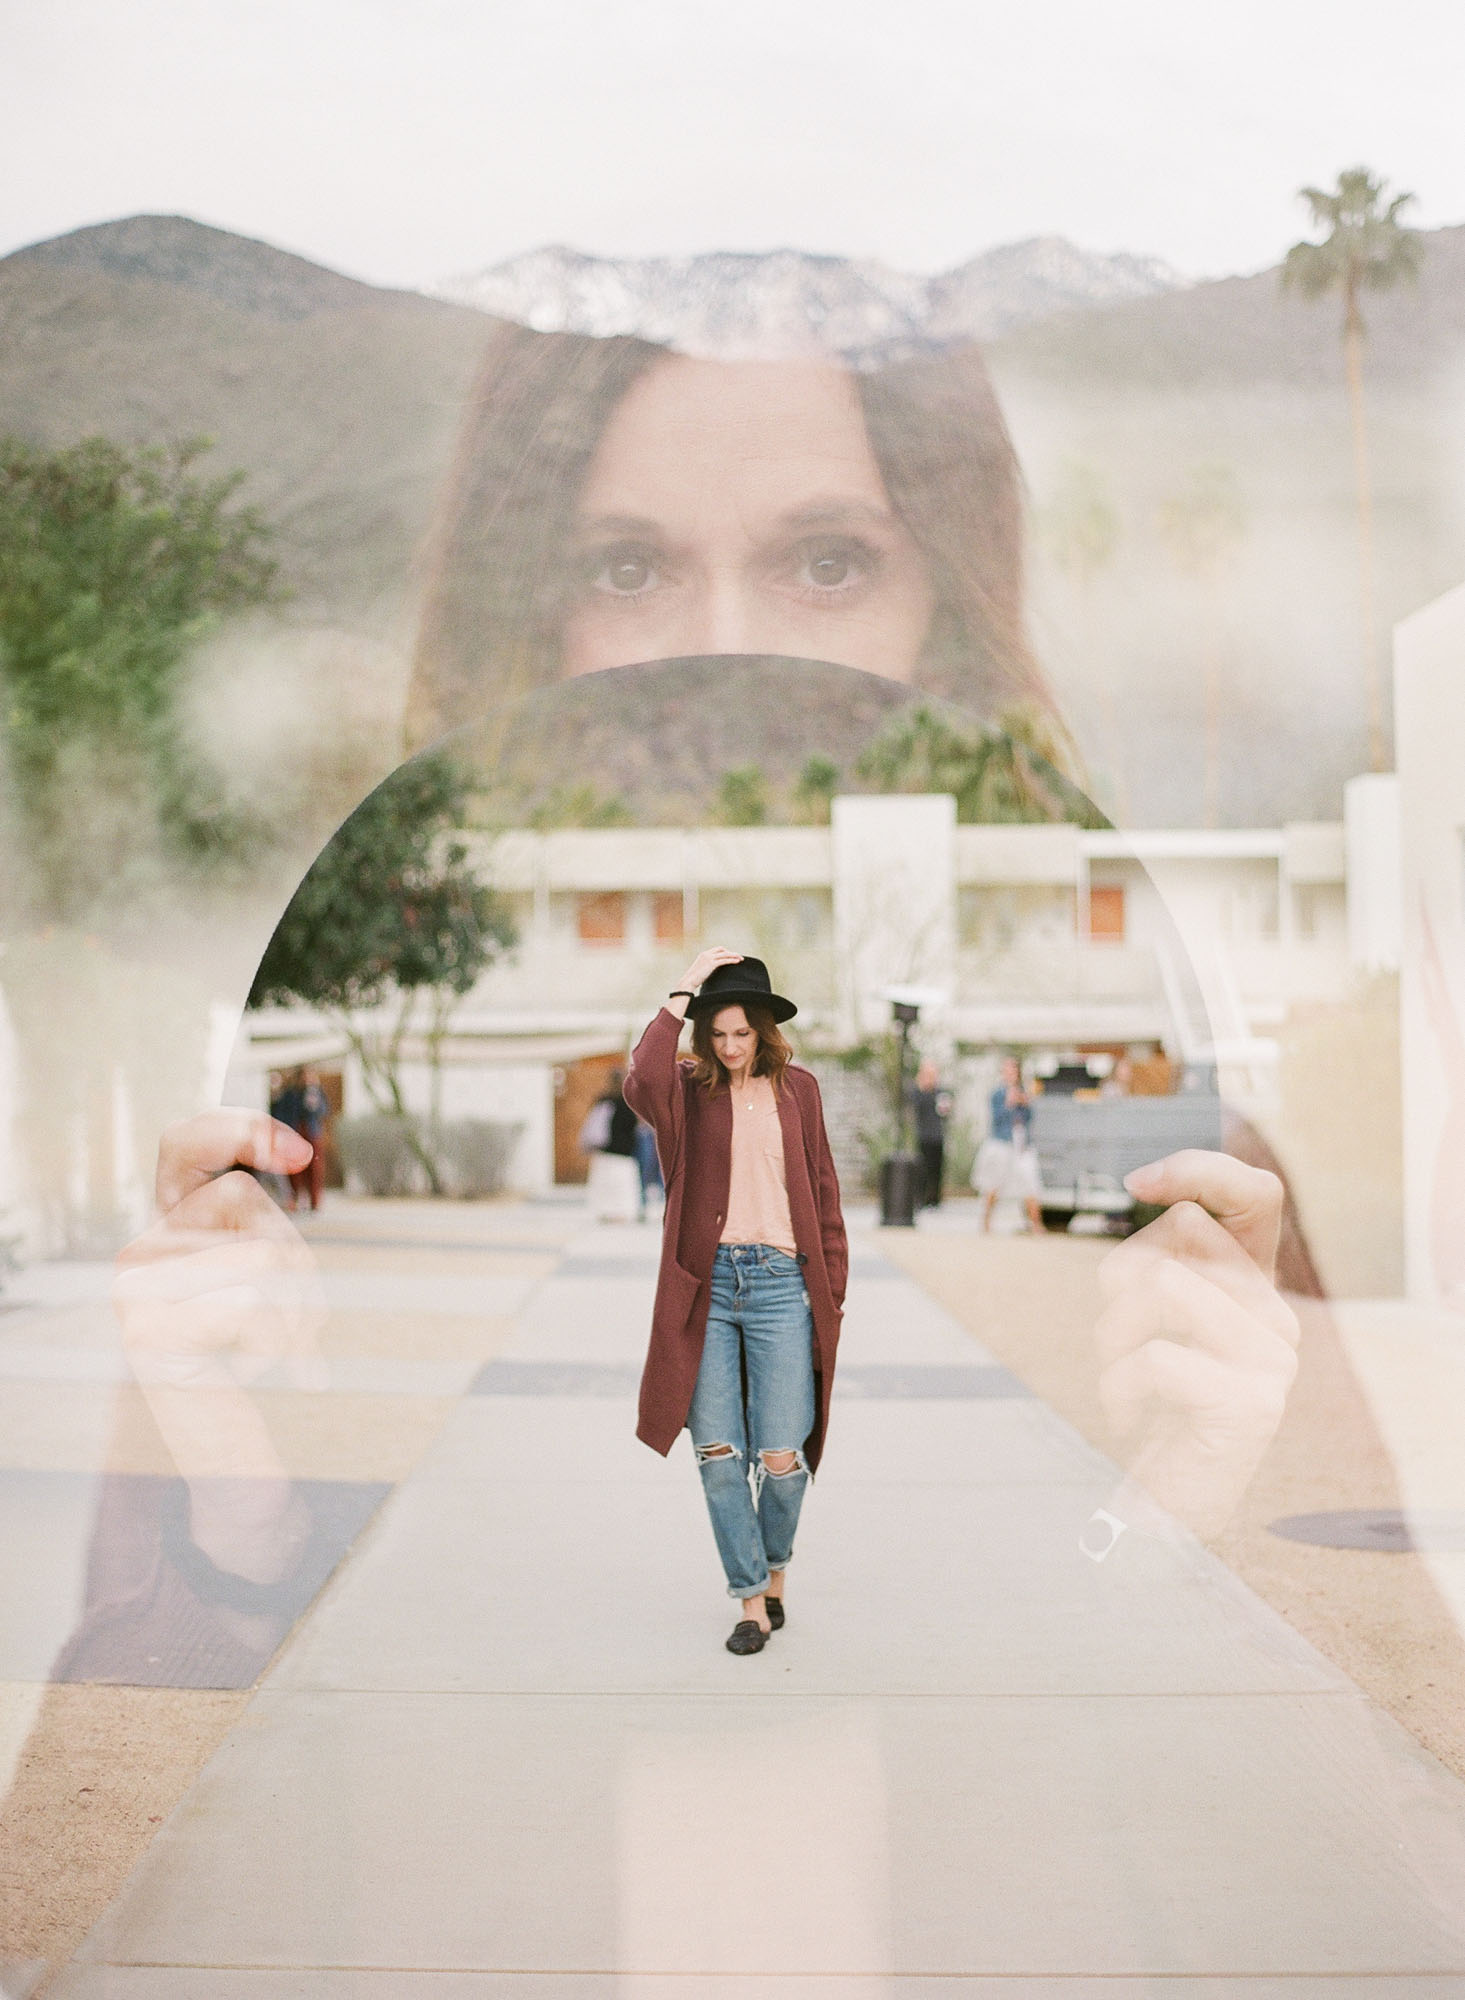 ace-hotel-palm-springs-california-film-photography-travel-photographer-double-exposure